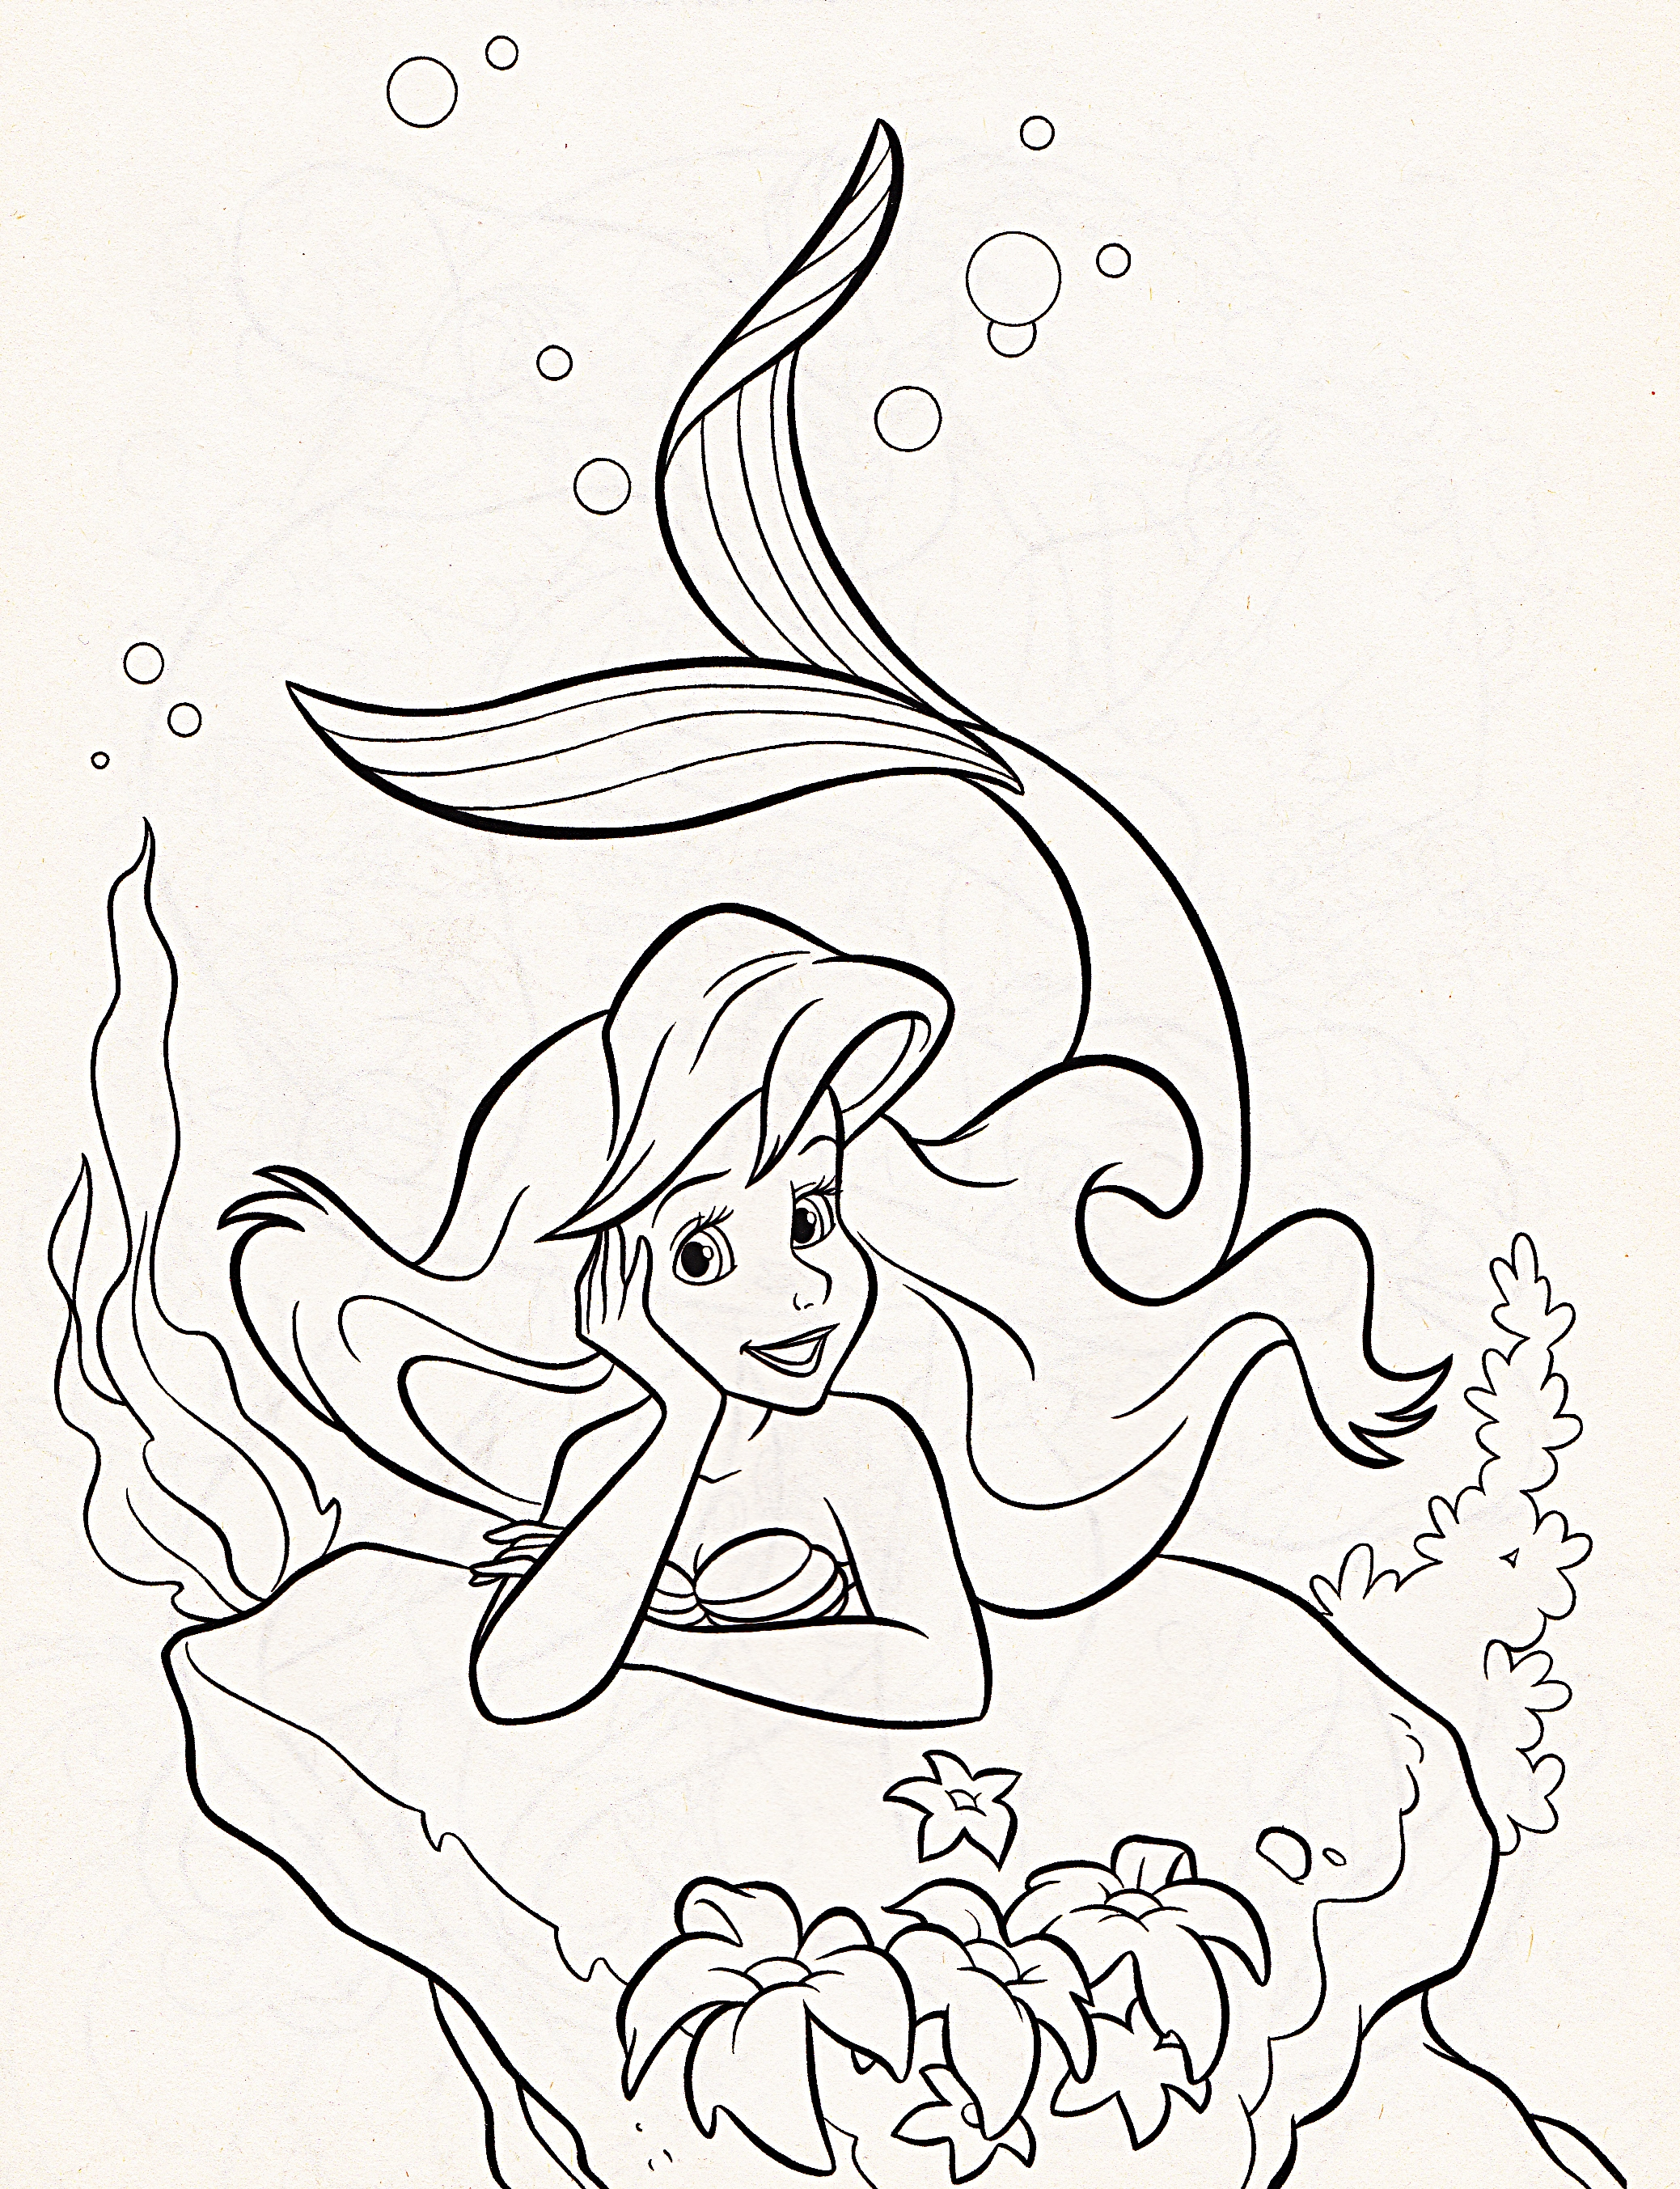 ariel coloring pages characters - photo#33